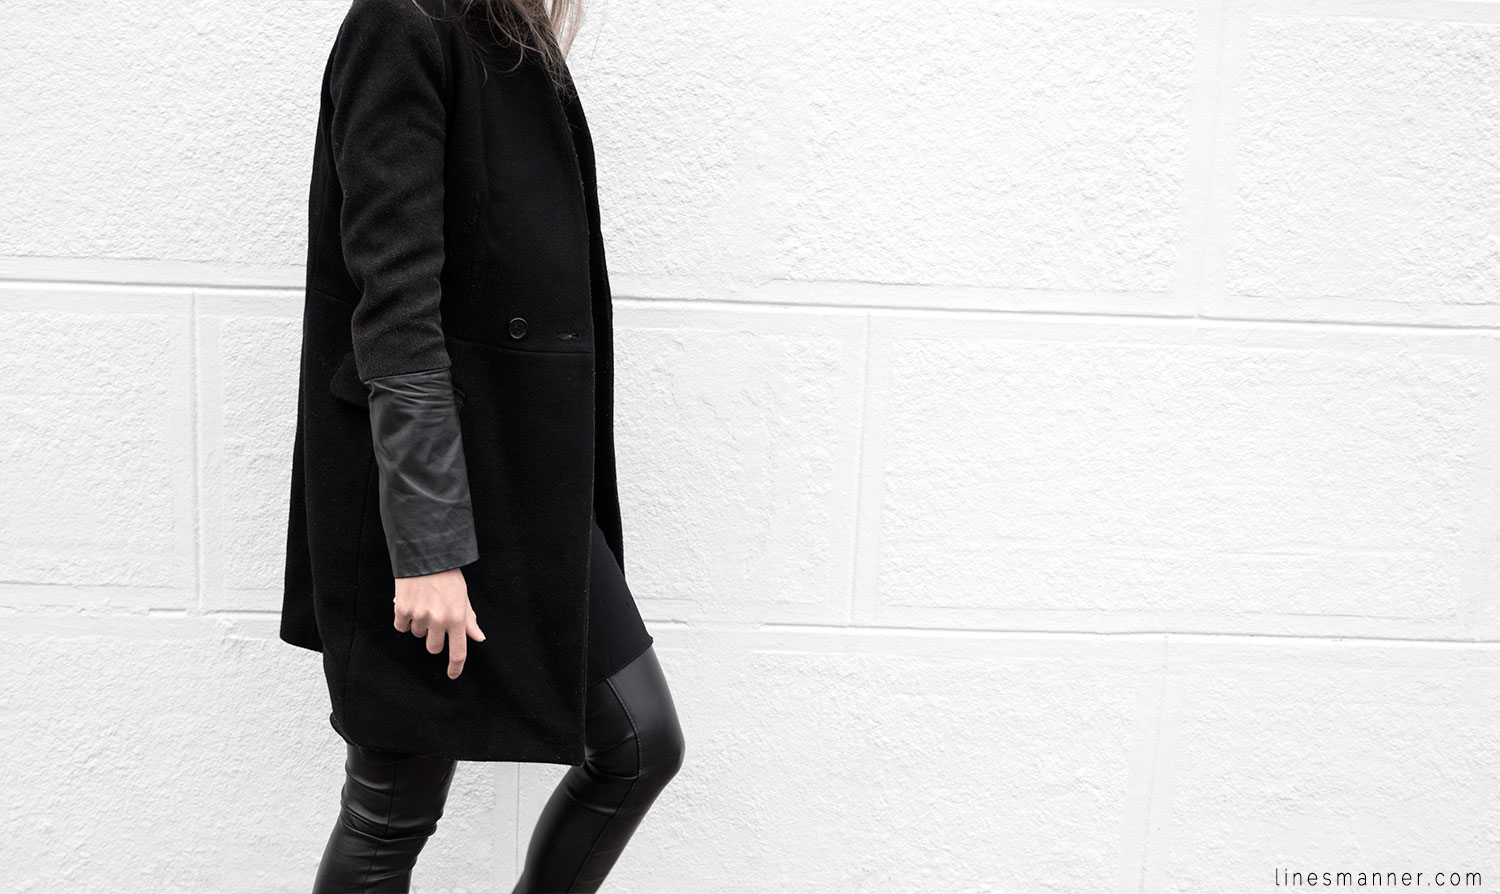 Lines-Manner-Timeless-Comfort-Essentials-Monochrome-Trend-Minimal-Textures-Fall-Leather-Details-Simplicity-Modern-Basics-Outfit-Structure-Relaxed-Leather-Luxurious-Sophistication-10